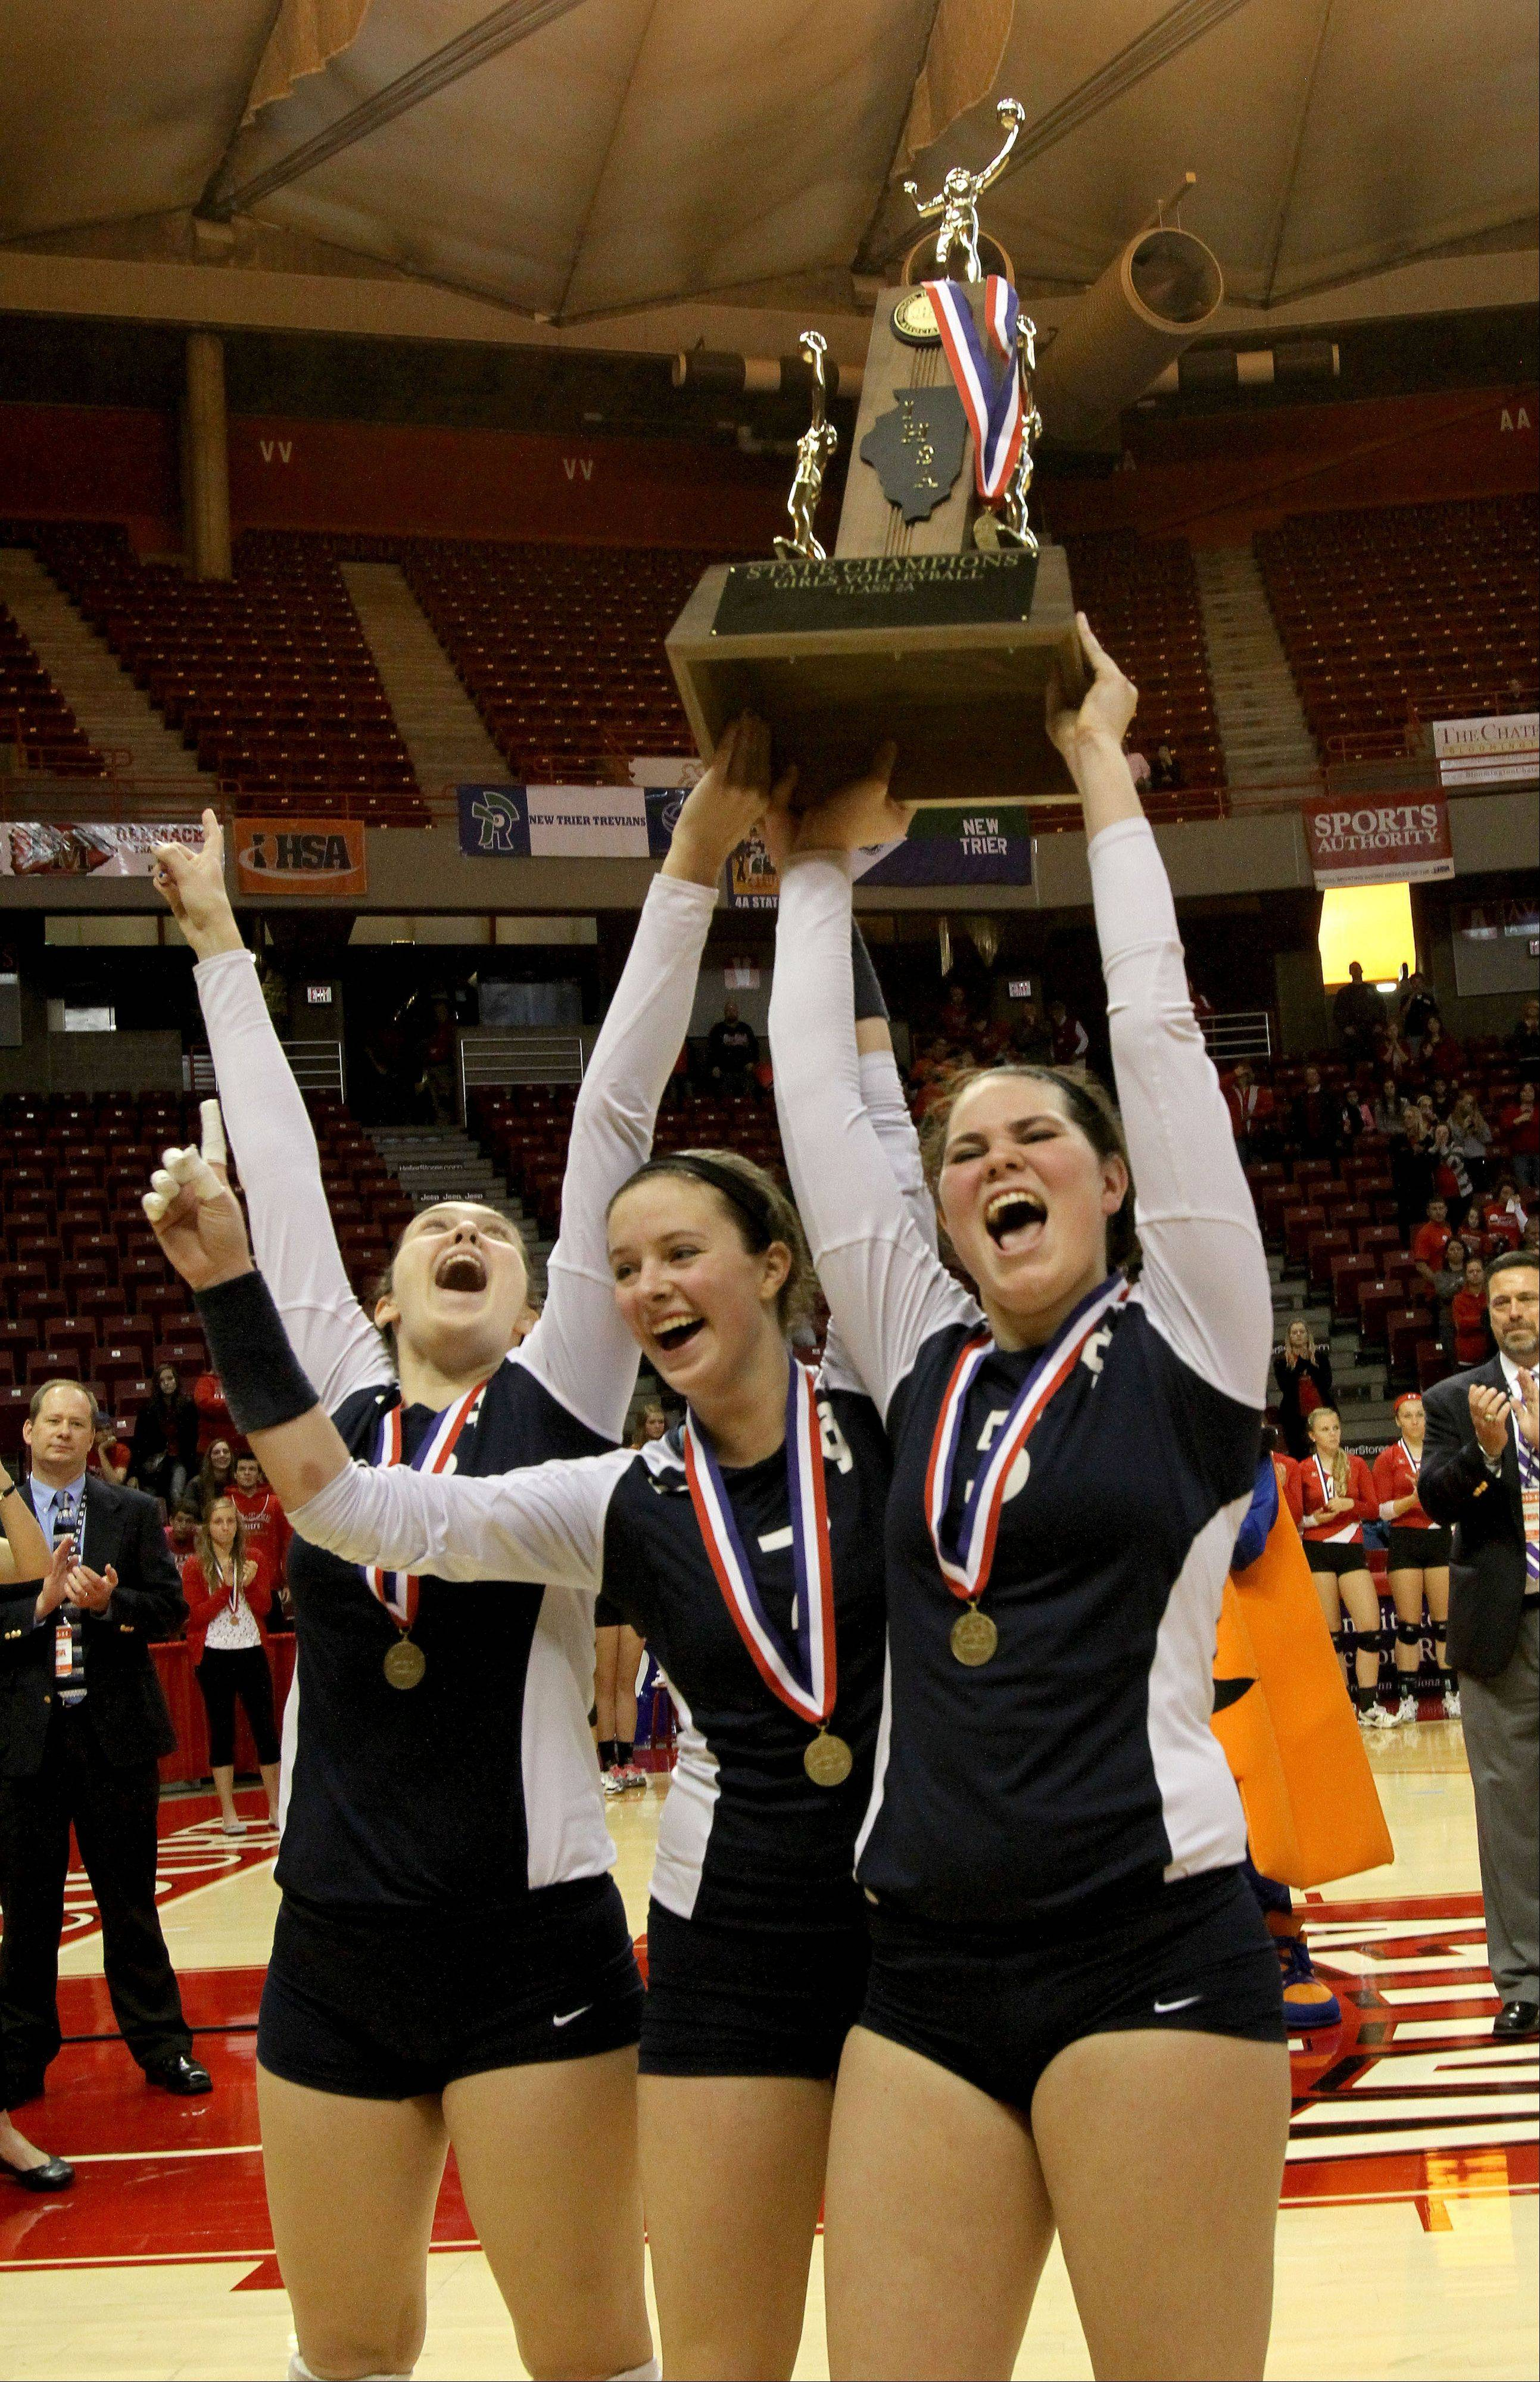 From left, Kimmy Martino, Delaney D'Amore and Rory Manion of IC Catholic show off the trophy after beating Edwards County for the Class 2A volleyball championship.